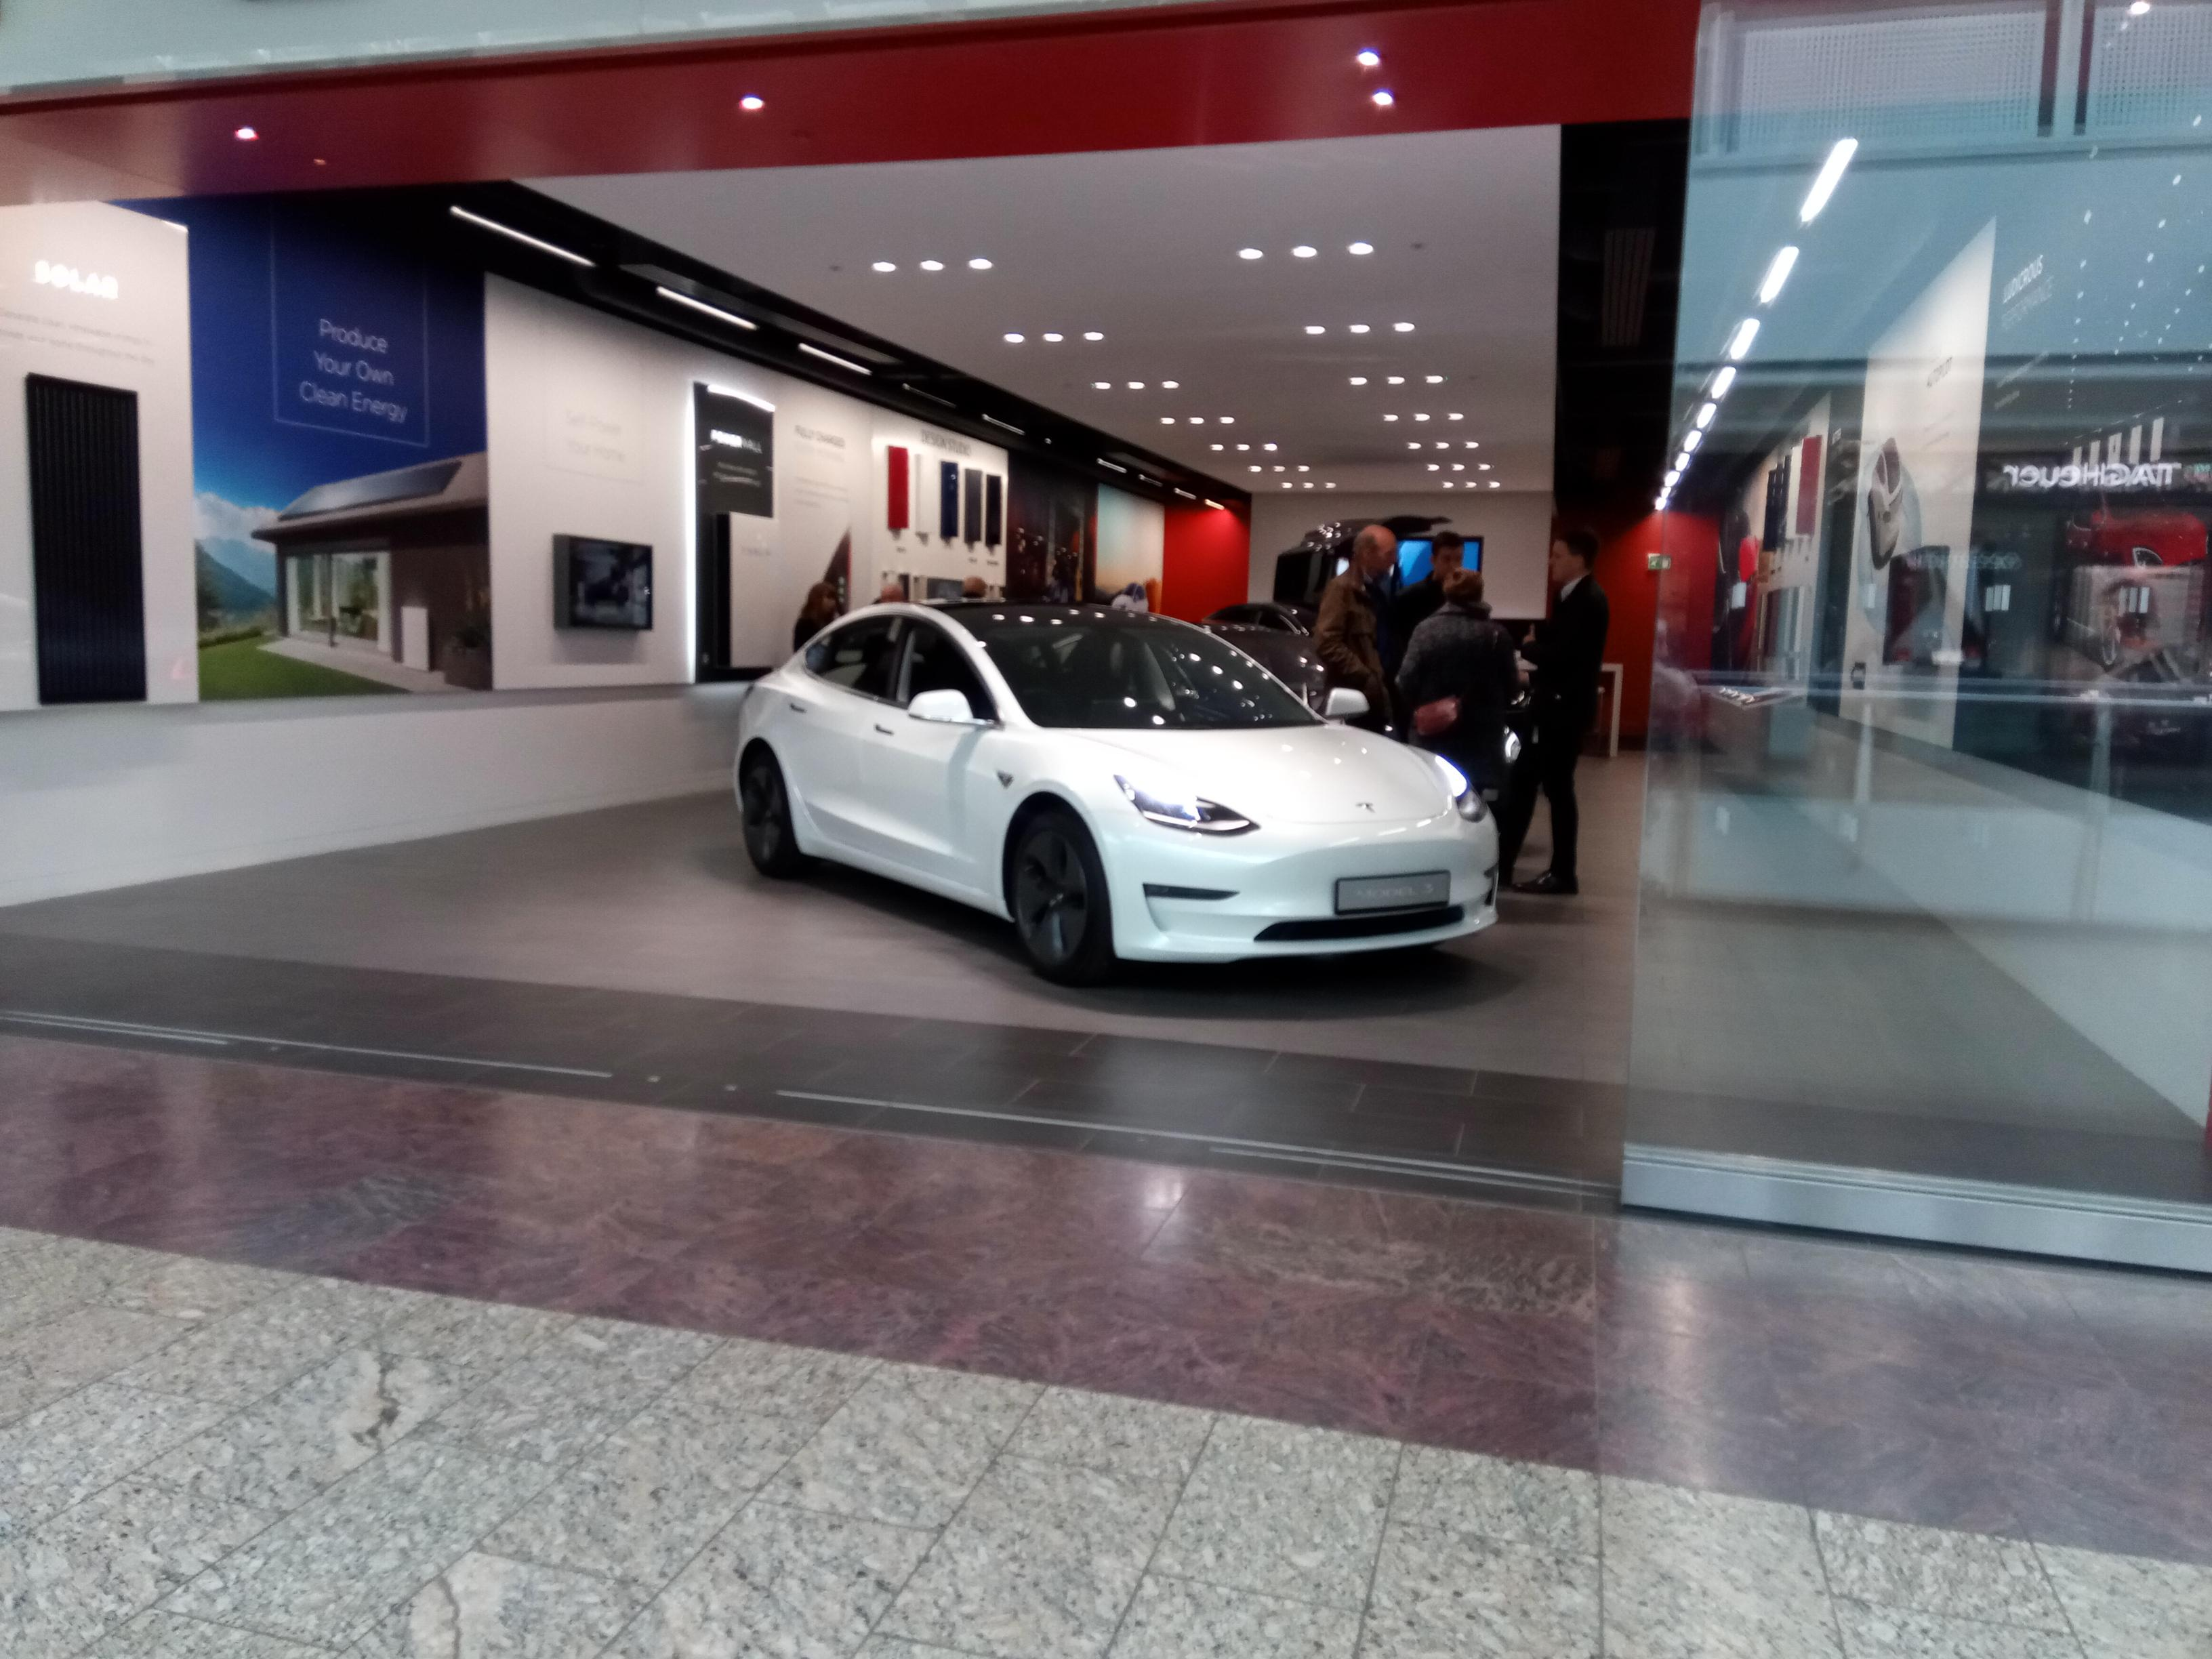 Tesla in a shop